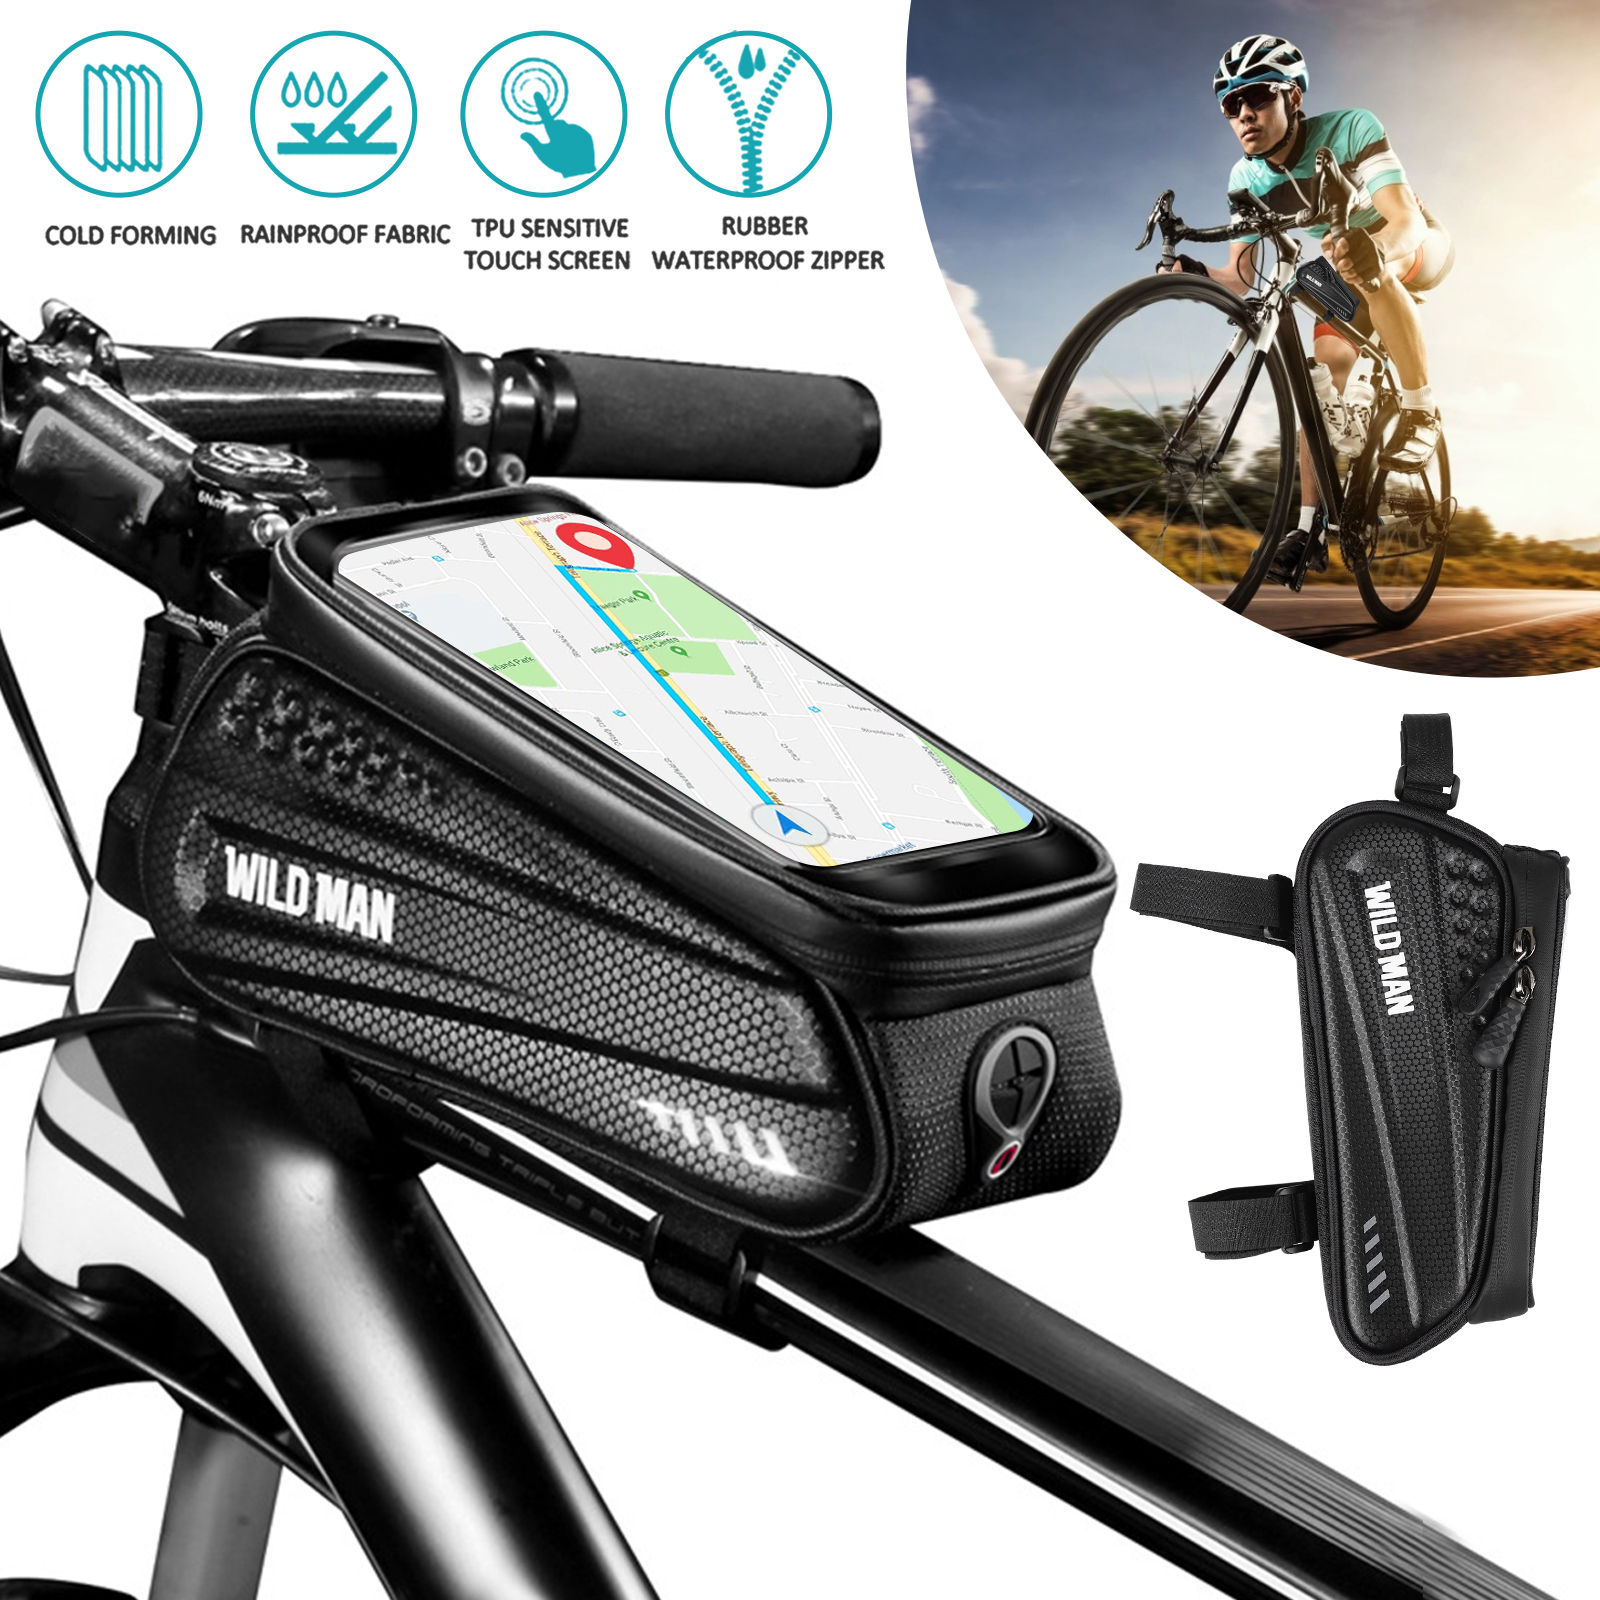 Details about  /Bike Bicycle Frame Front Tube Waterproof Pouch Bag Mobile Phone Storage Bag